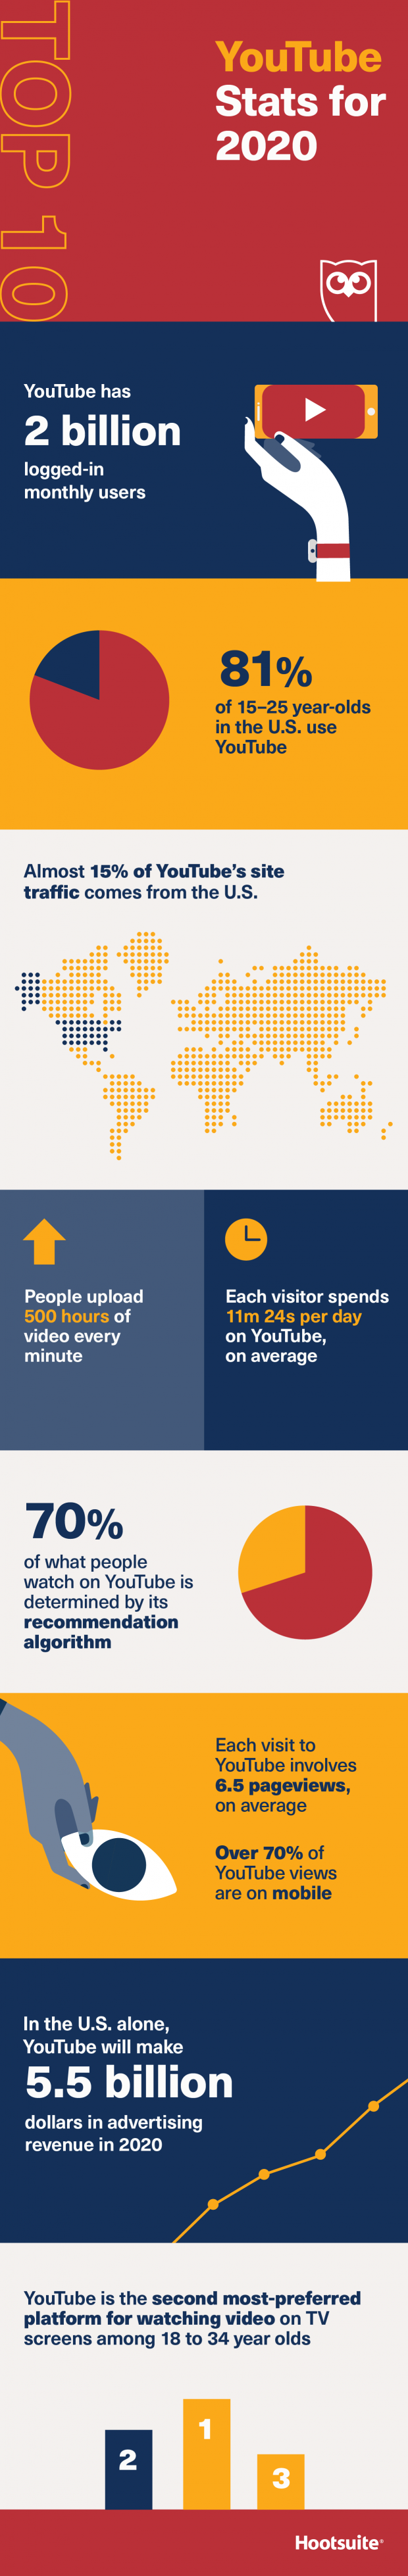 Statistiques youtube 2020